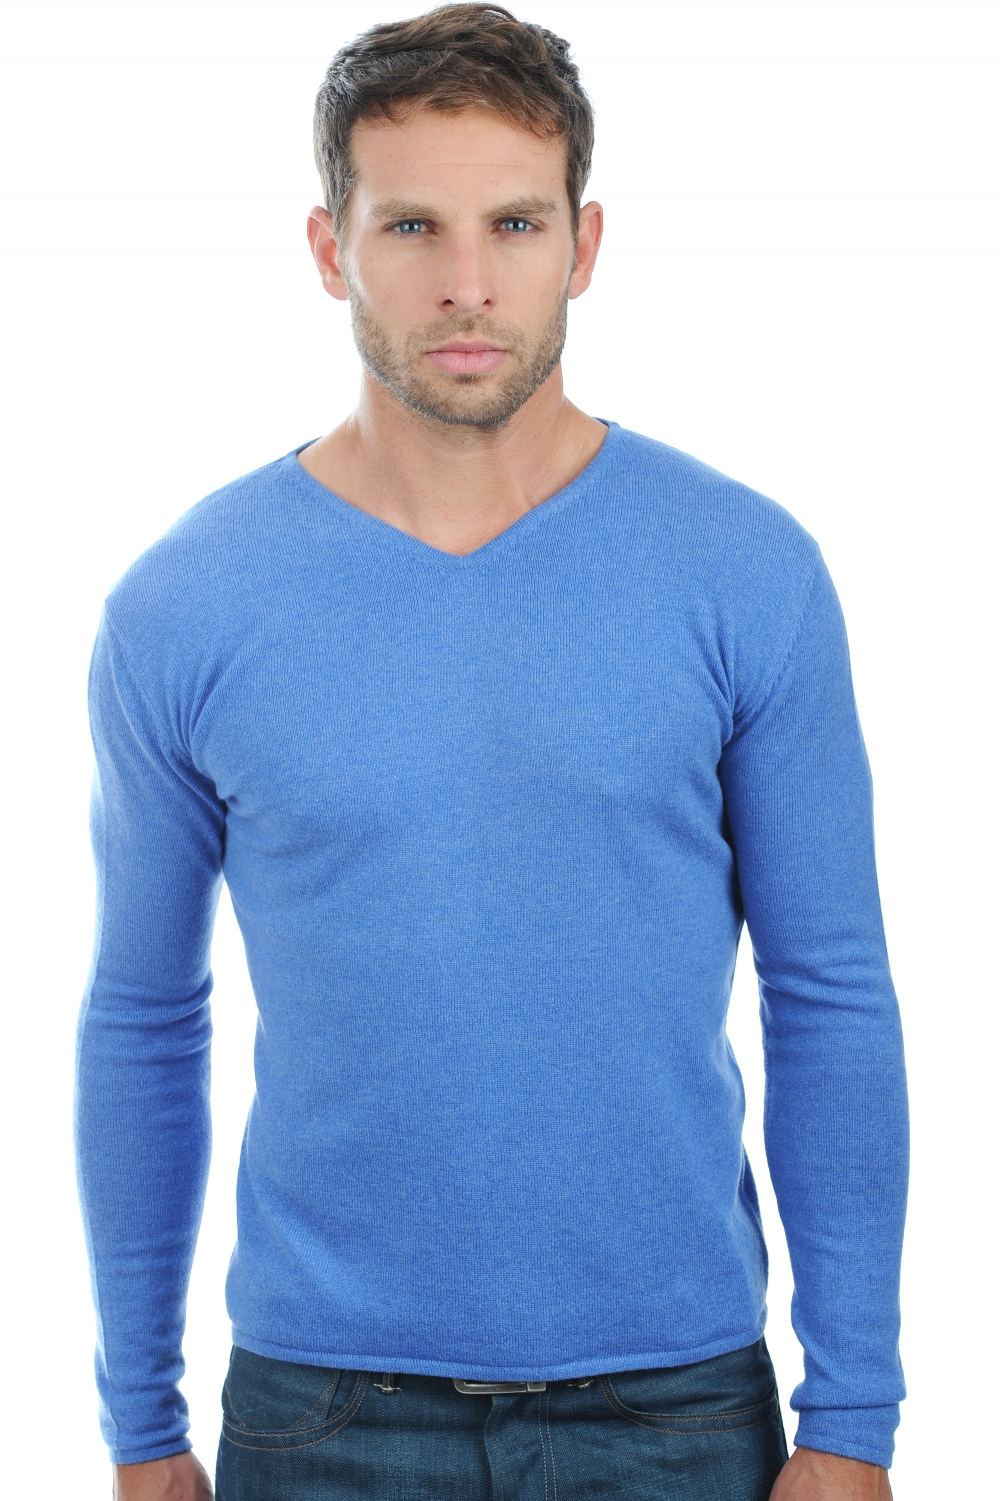 cachemire pull homme col v arty bleu chine m